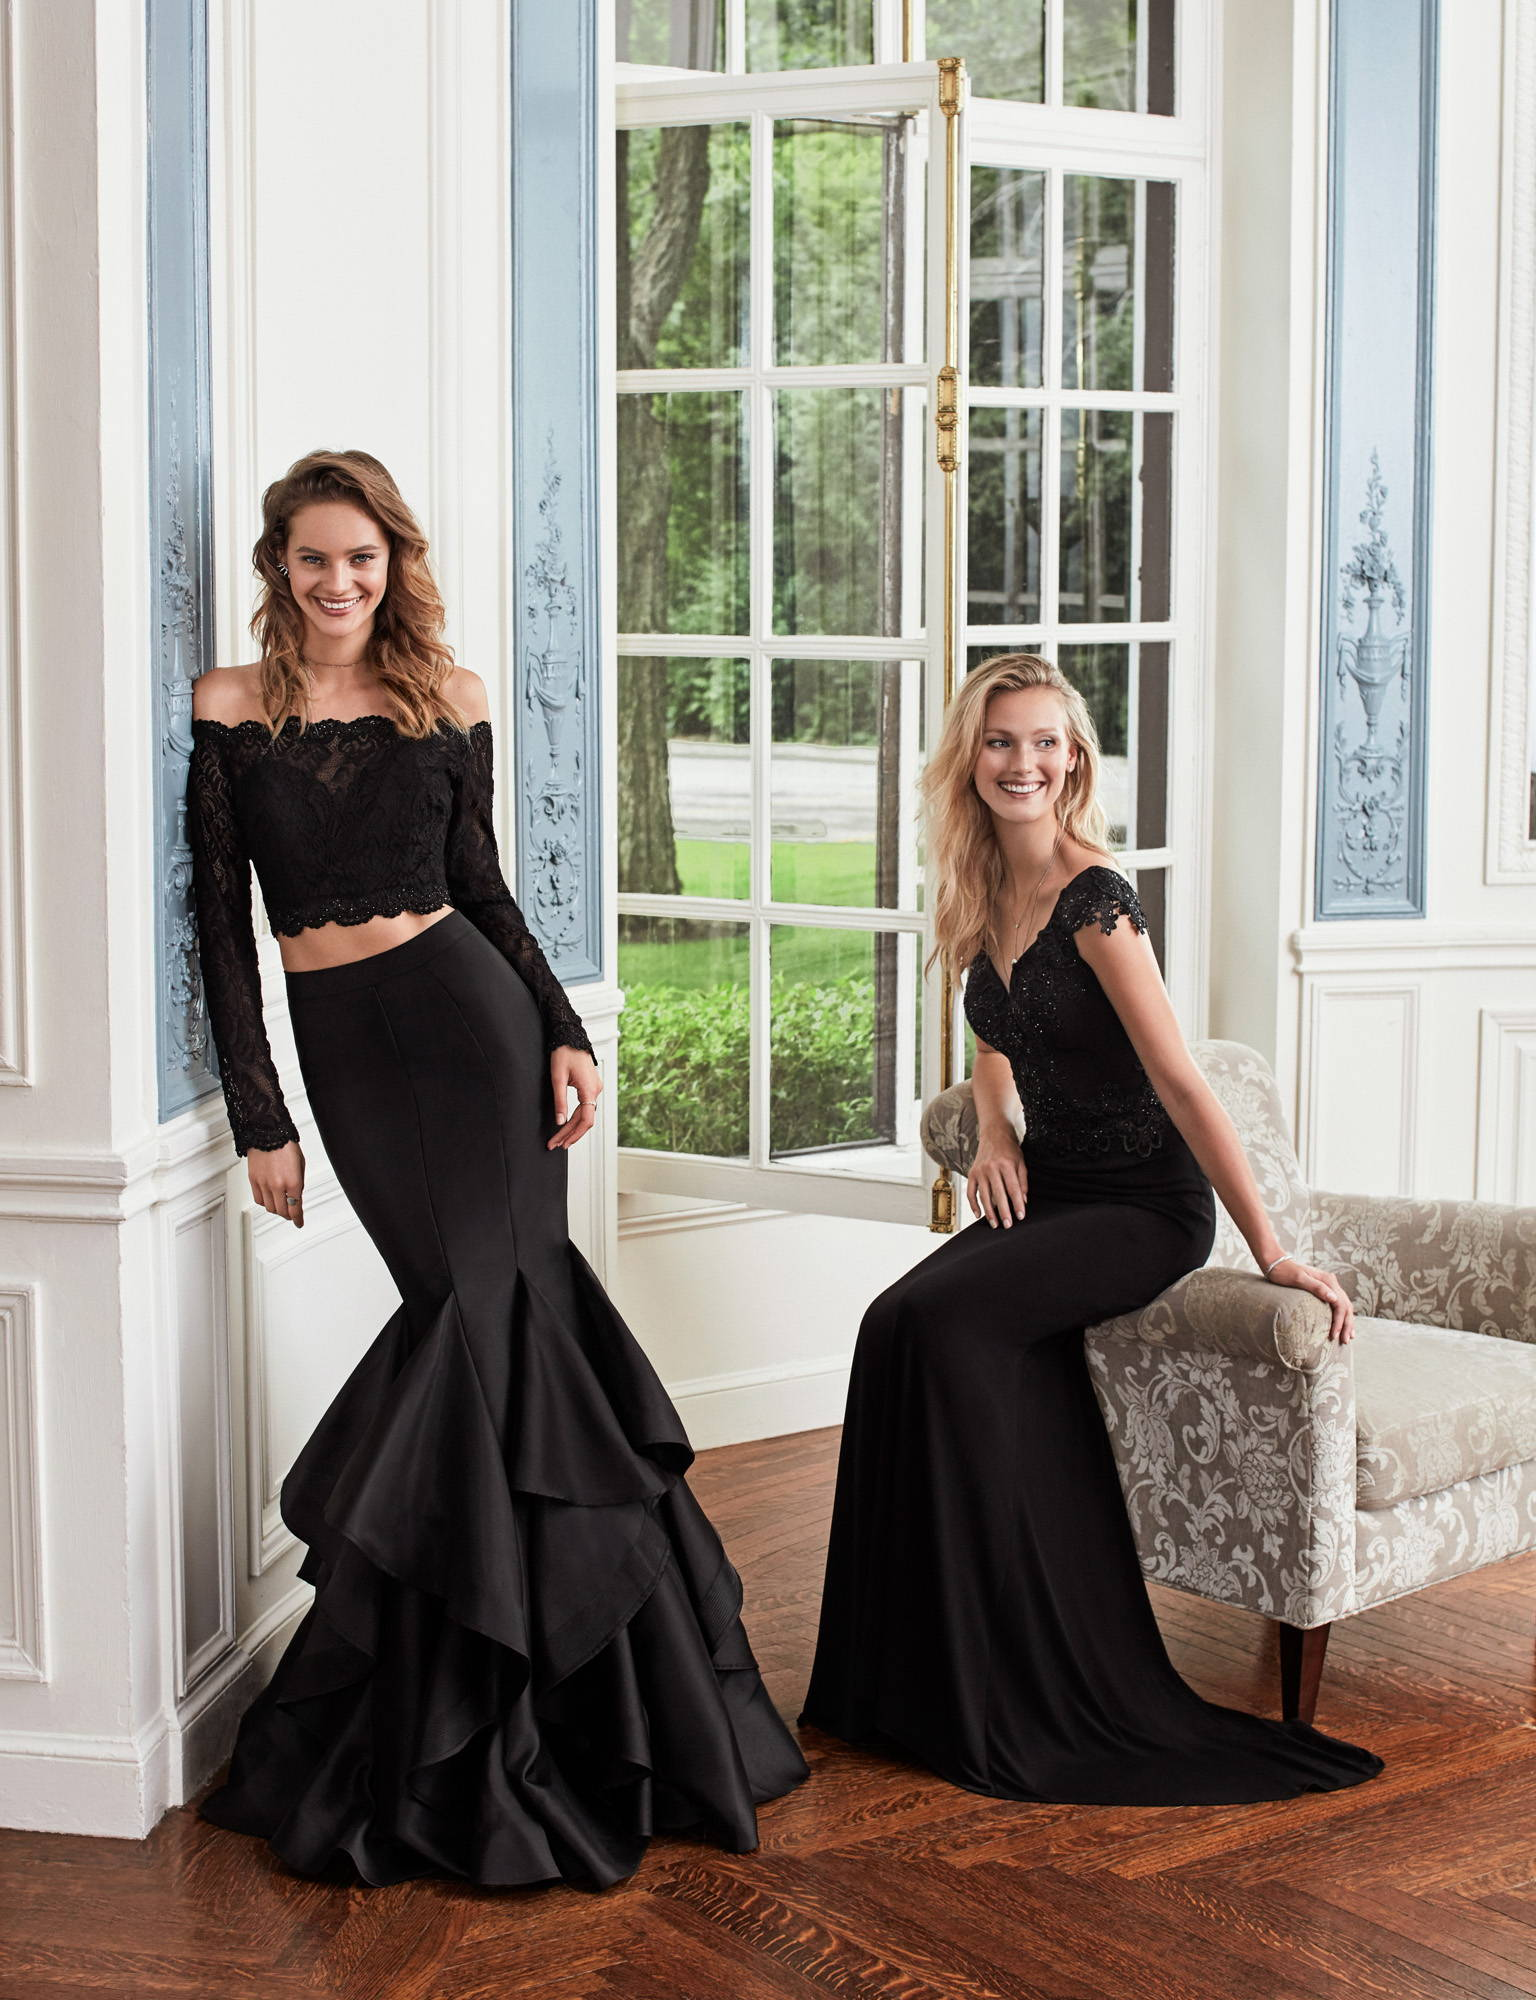 Shop Evening Dresses up to 90% Off